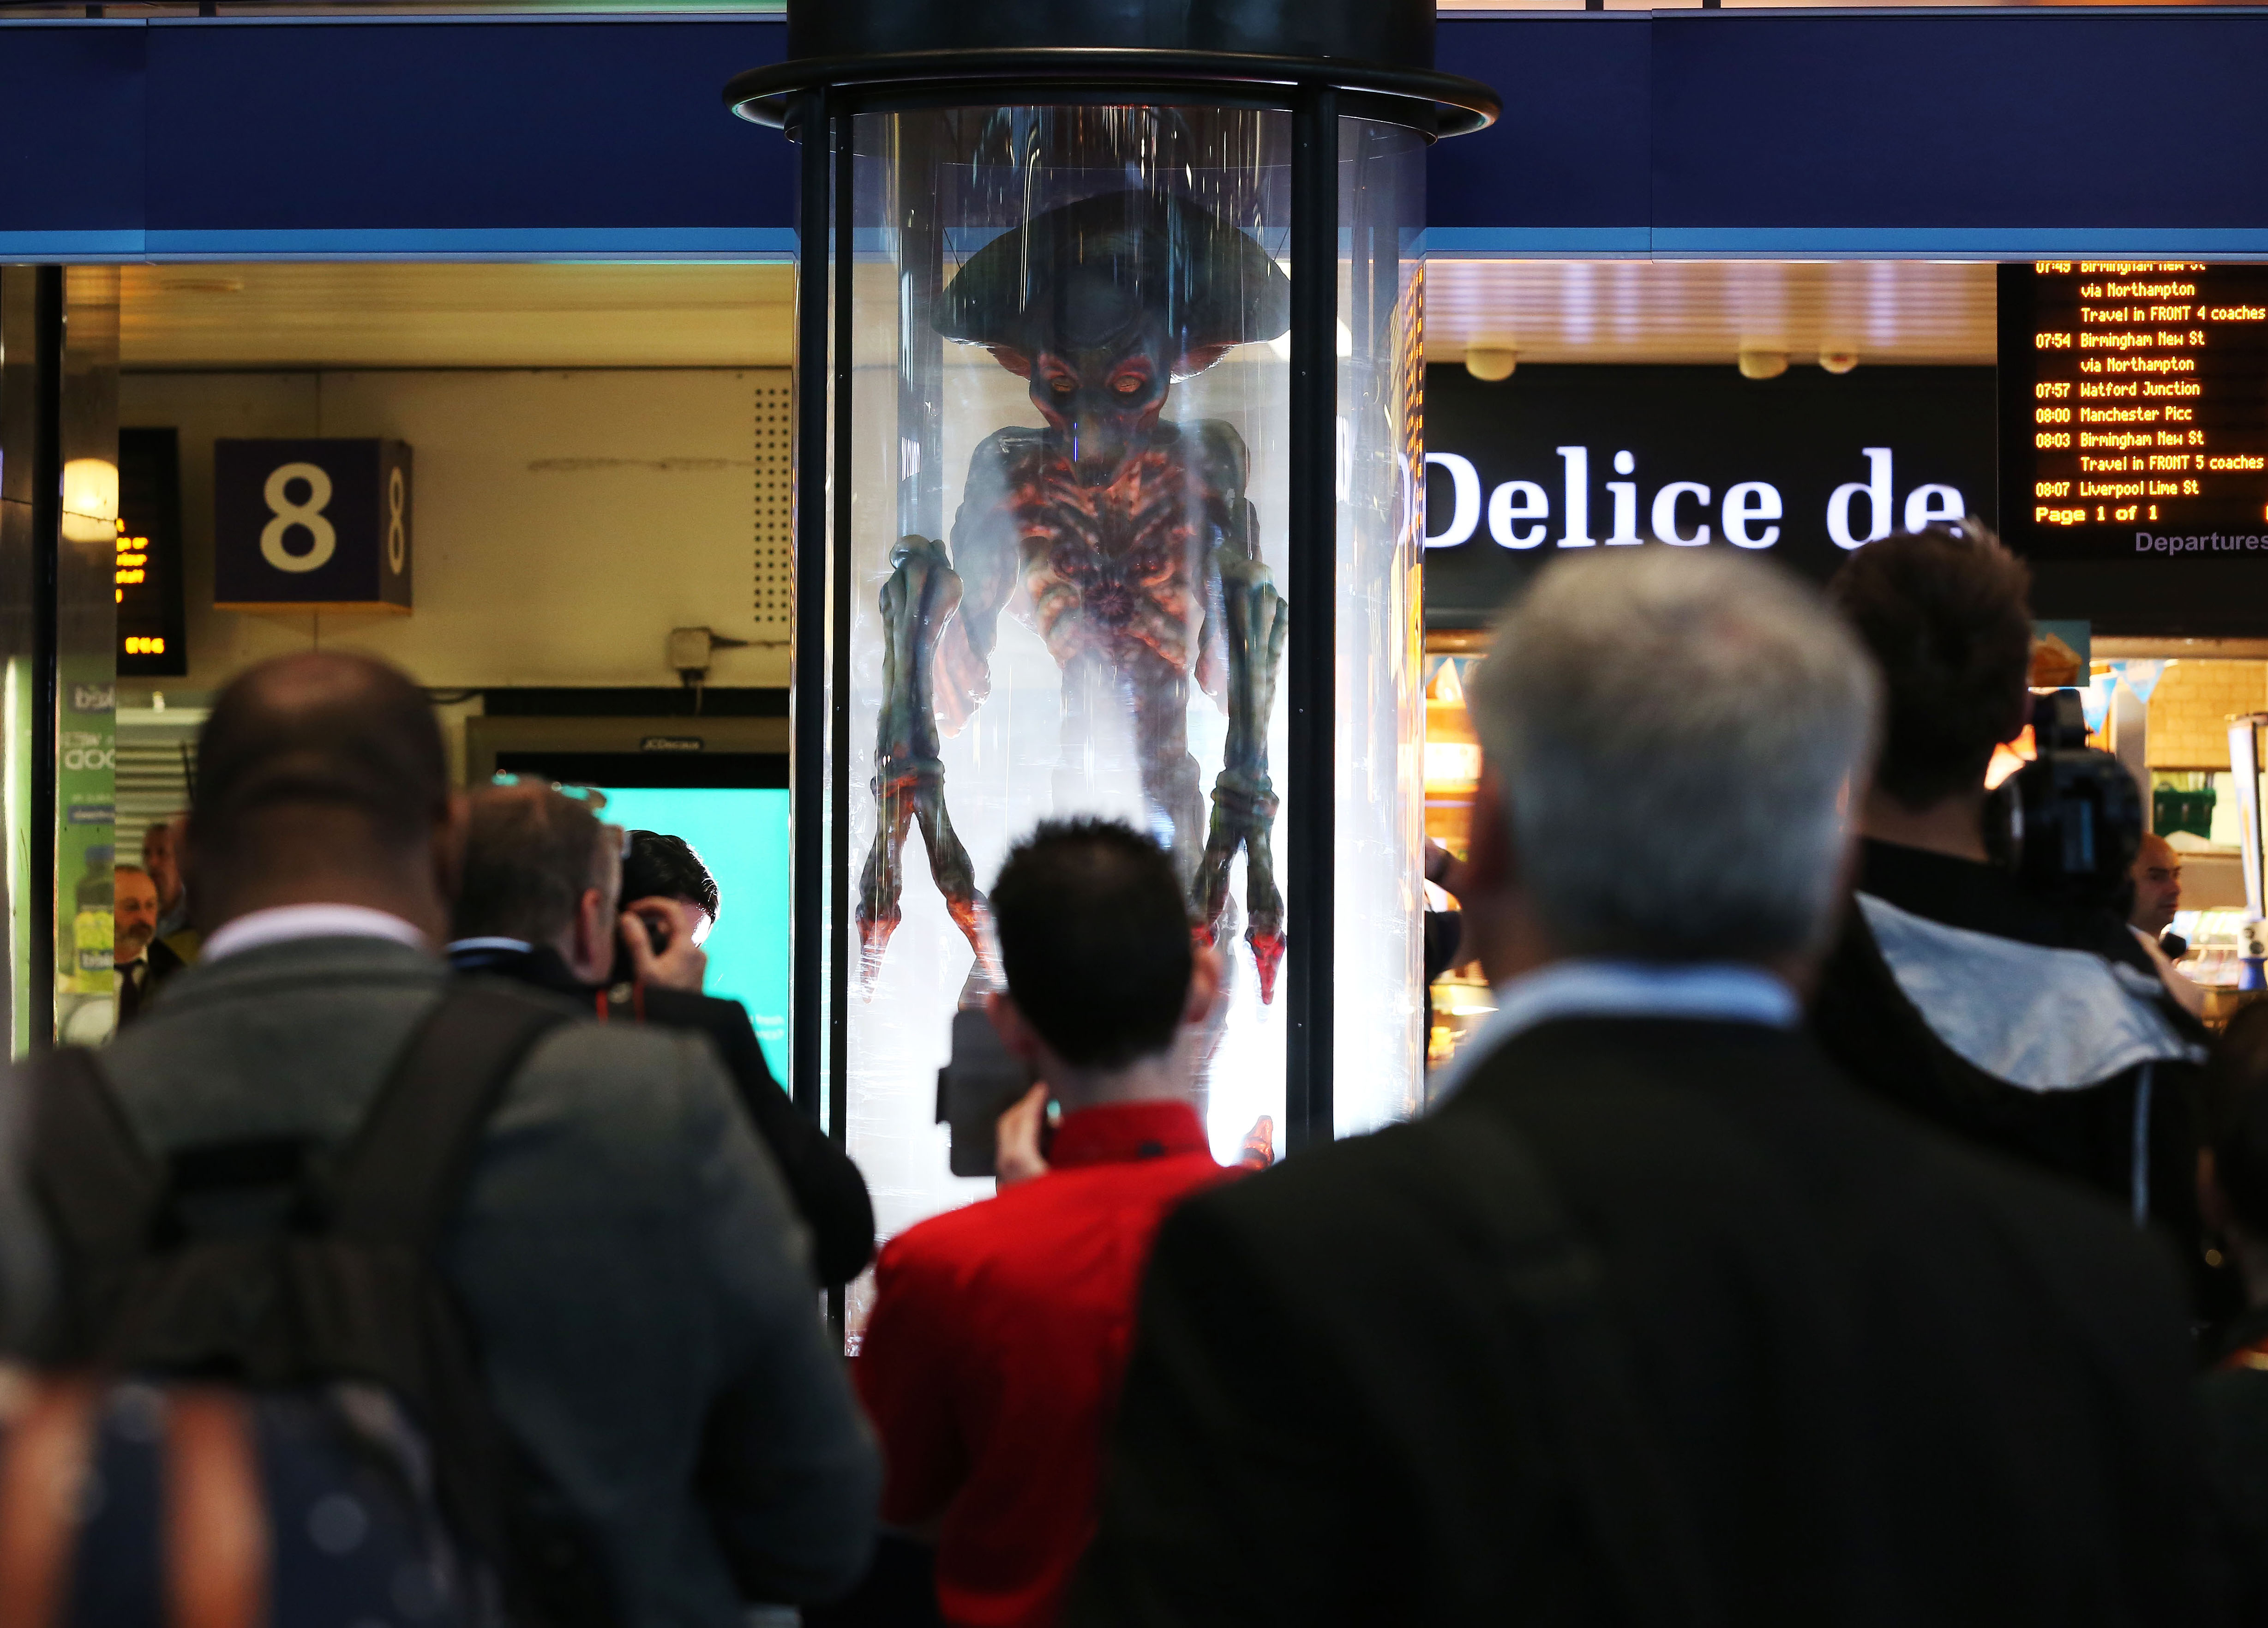 Alien at Euston Station for INDEPENDENCE DAY: RESURGENCE, London, UK, 6th June, 2016